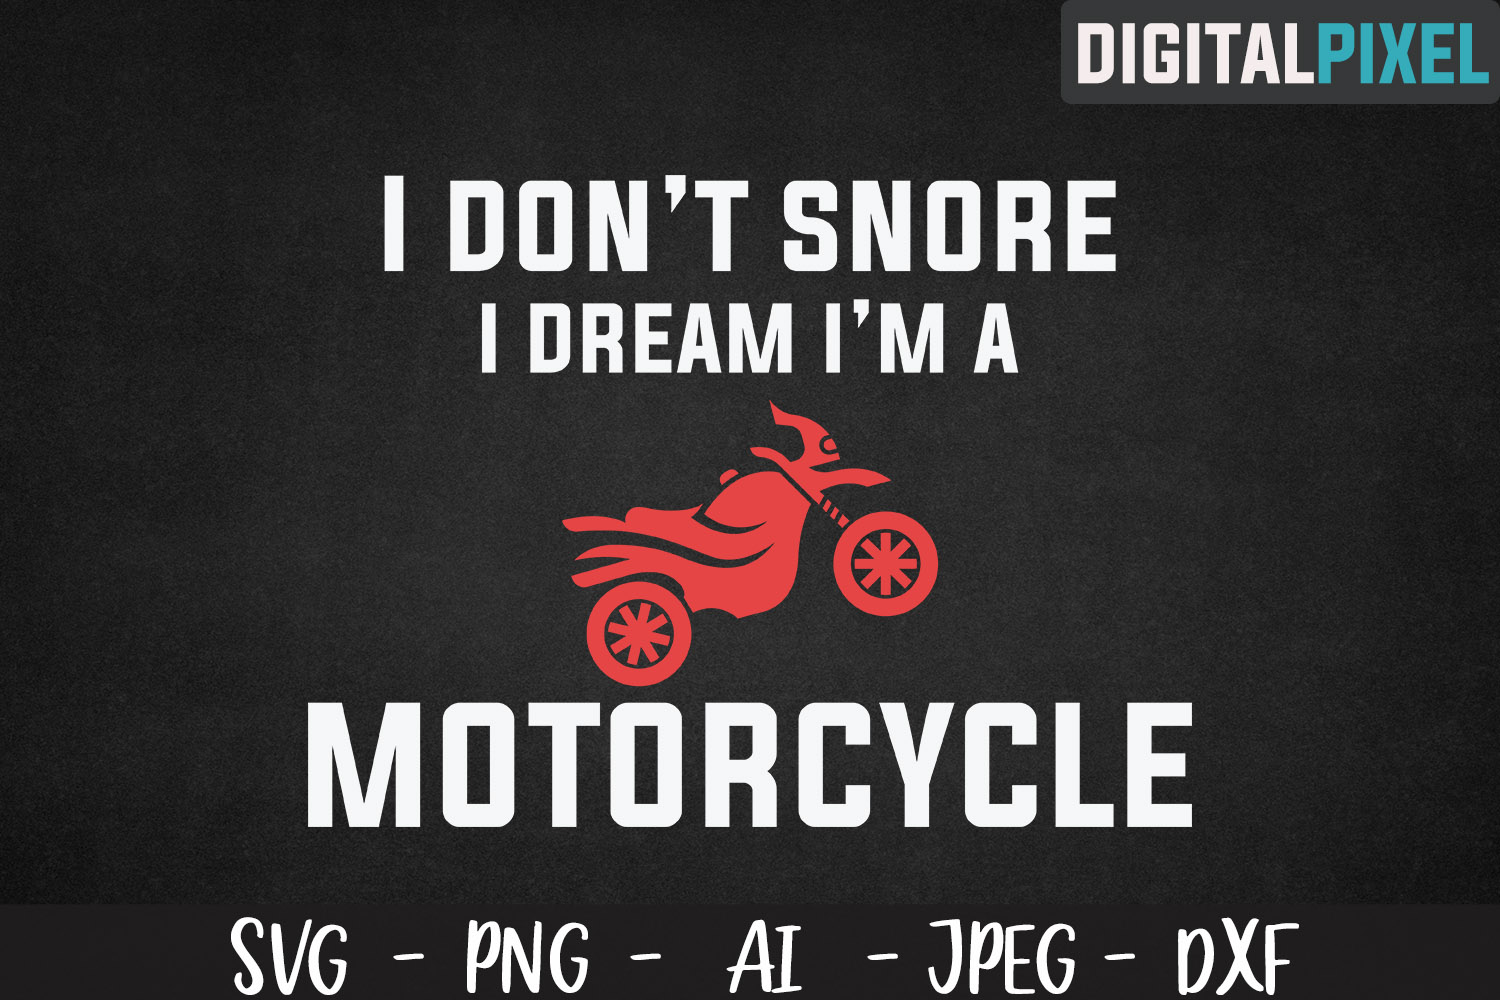 I Don't Snor I Dream I'm A Motorcycle SVG PNG DXF Crafters example image 2